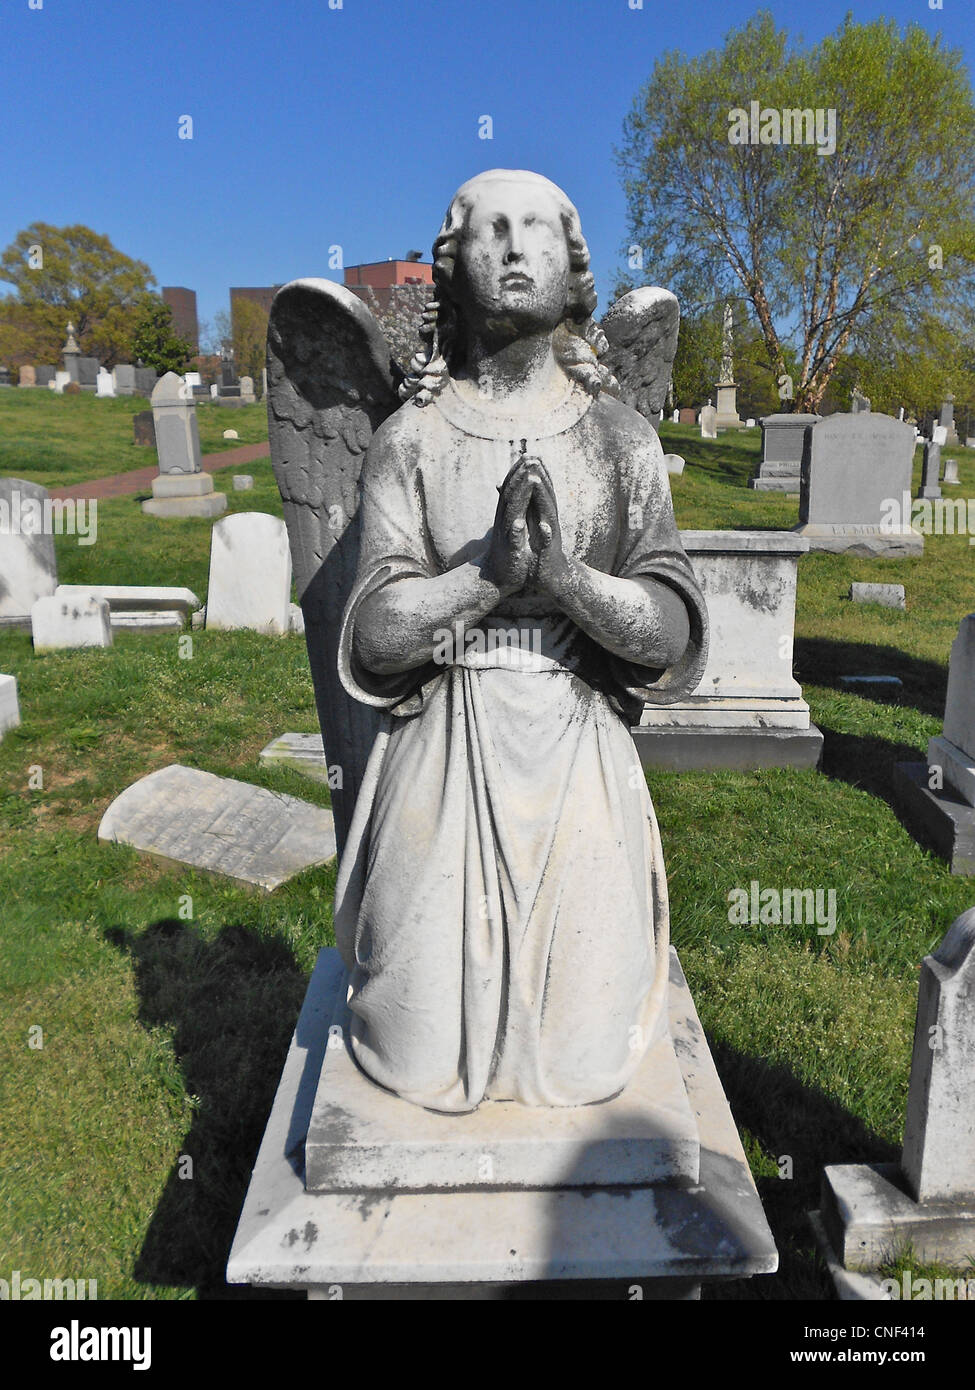 Grave of Alice May Parker, aged 14, at the Congressional Cemetery in Washington, DC - Stock Image